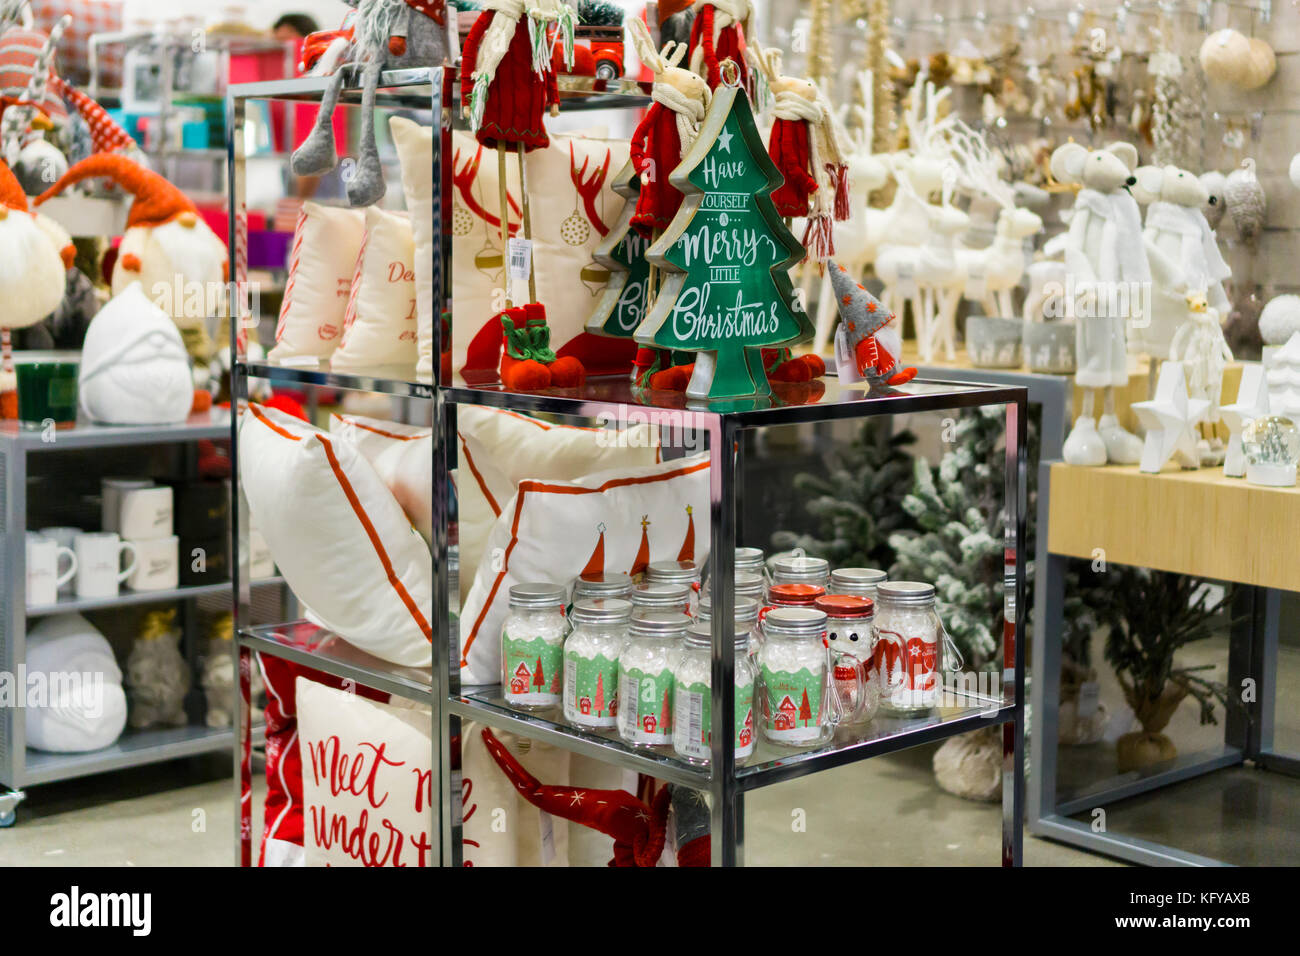 Christmas display the new Nordstrom Rack off-price store in the ...